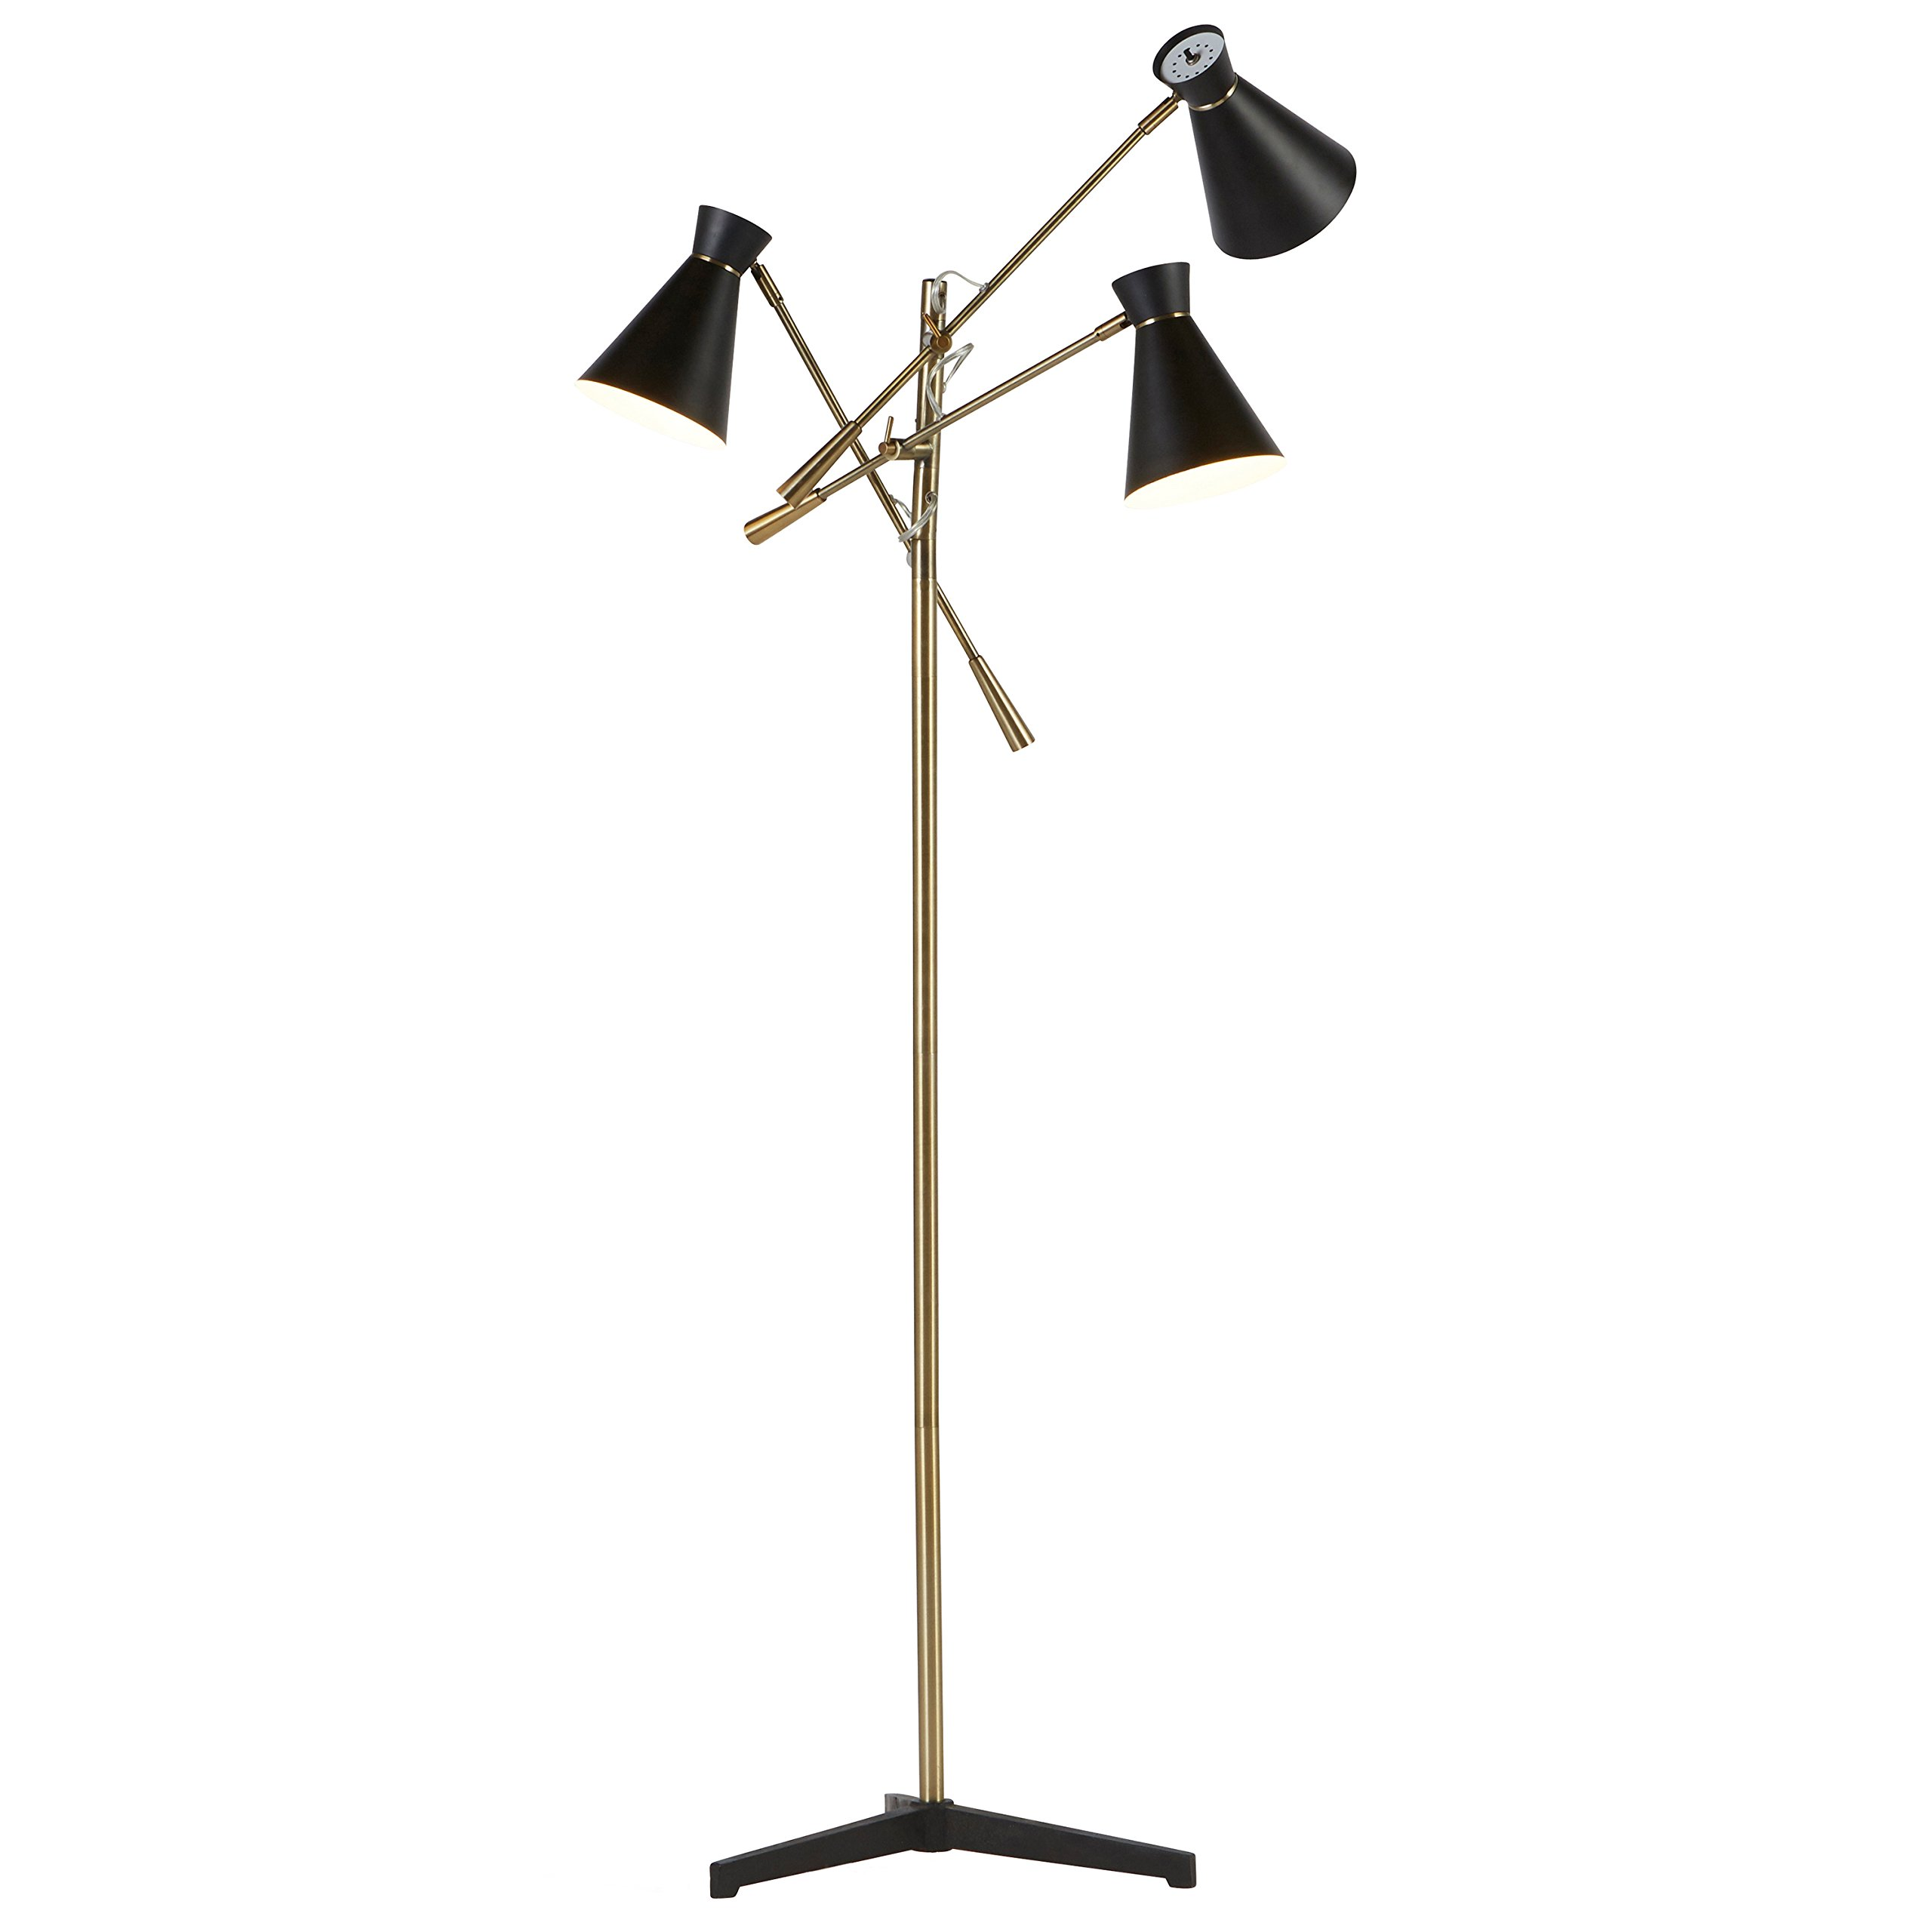 Rivet Retro 3-Arm Floor Lamp, 69''H, With Bulbs, Brass by Rivet